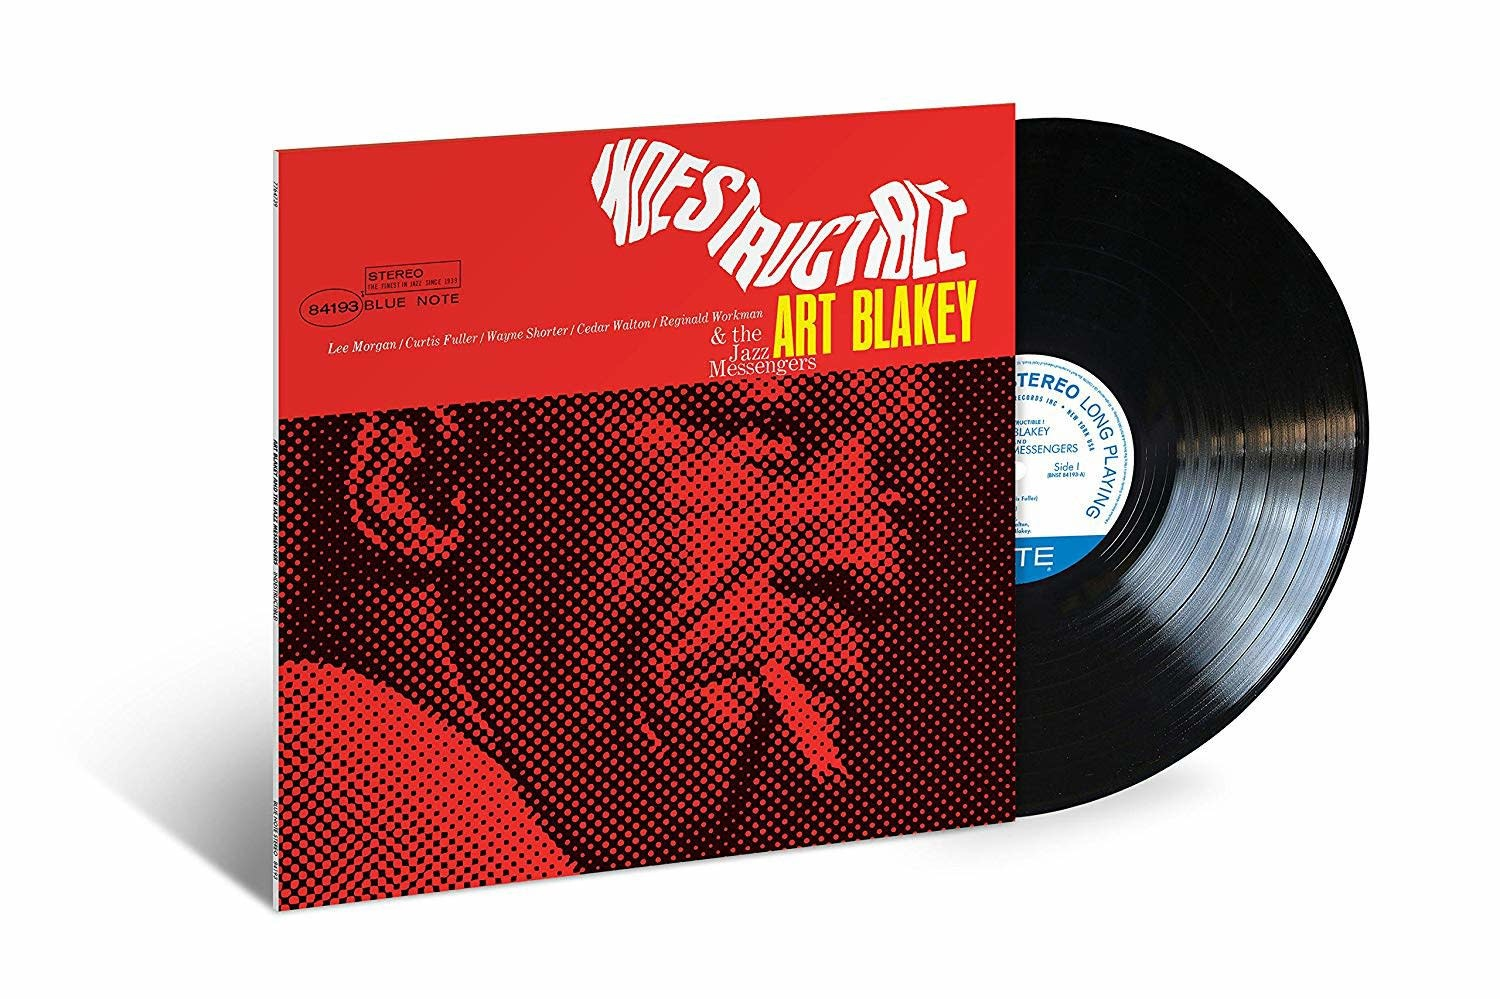 Art Blakey & The Jazz Messengers - Indestructible